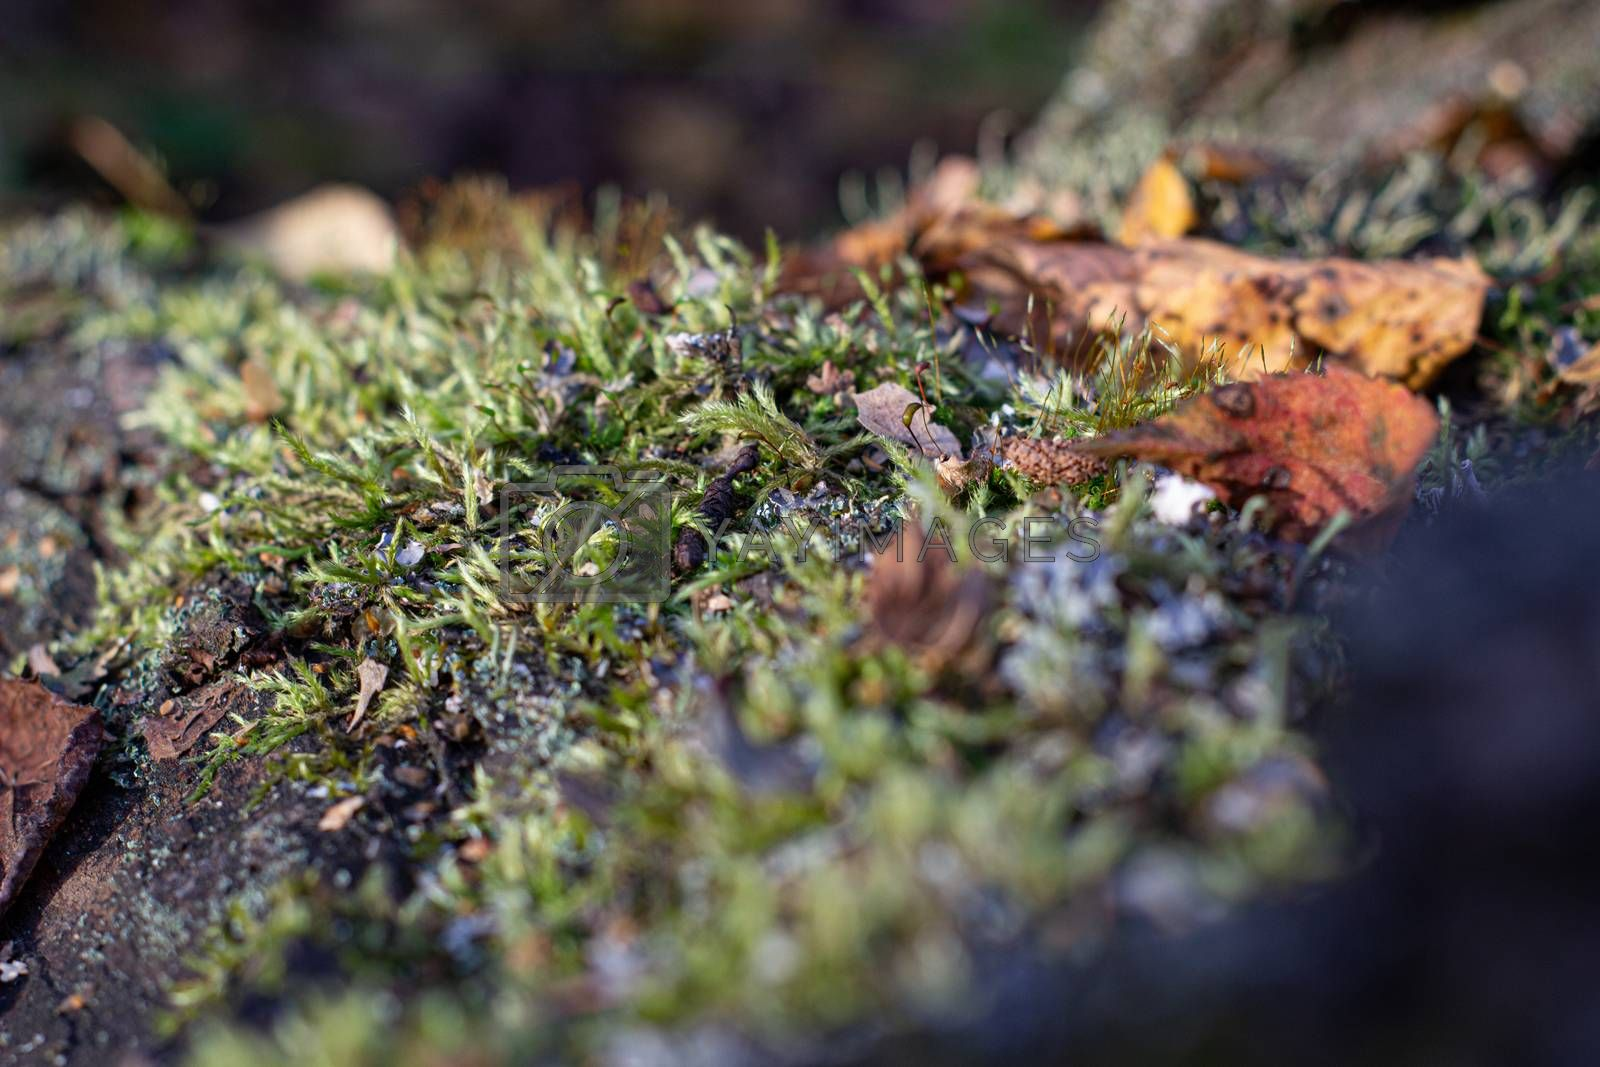 Moss on the tree. Mushroom picking. A walk in the woods